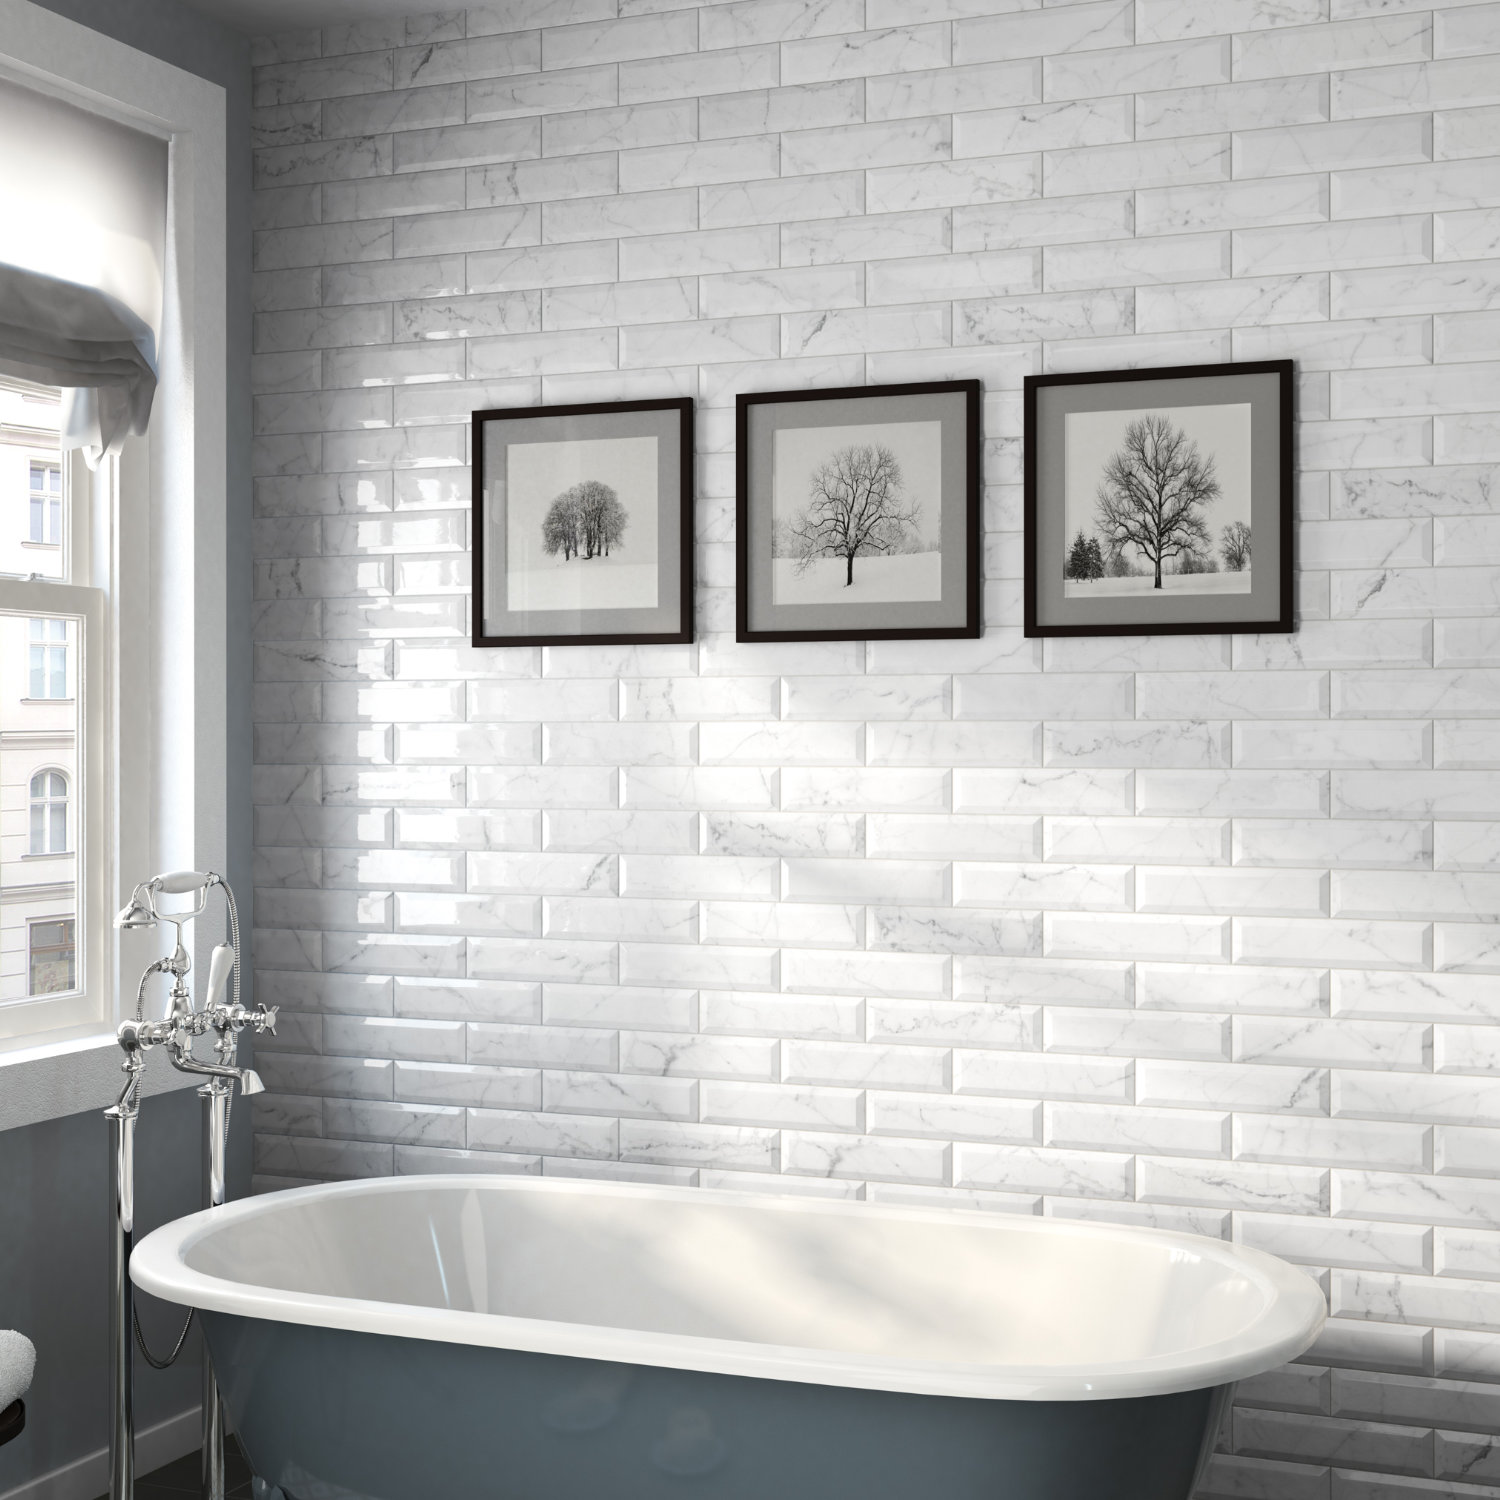 Dalby - Wall | Tile & Stone Gallery - Ceramic & Porcelain Tile Showrooms